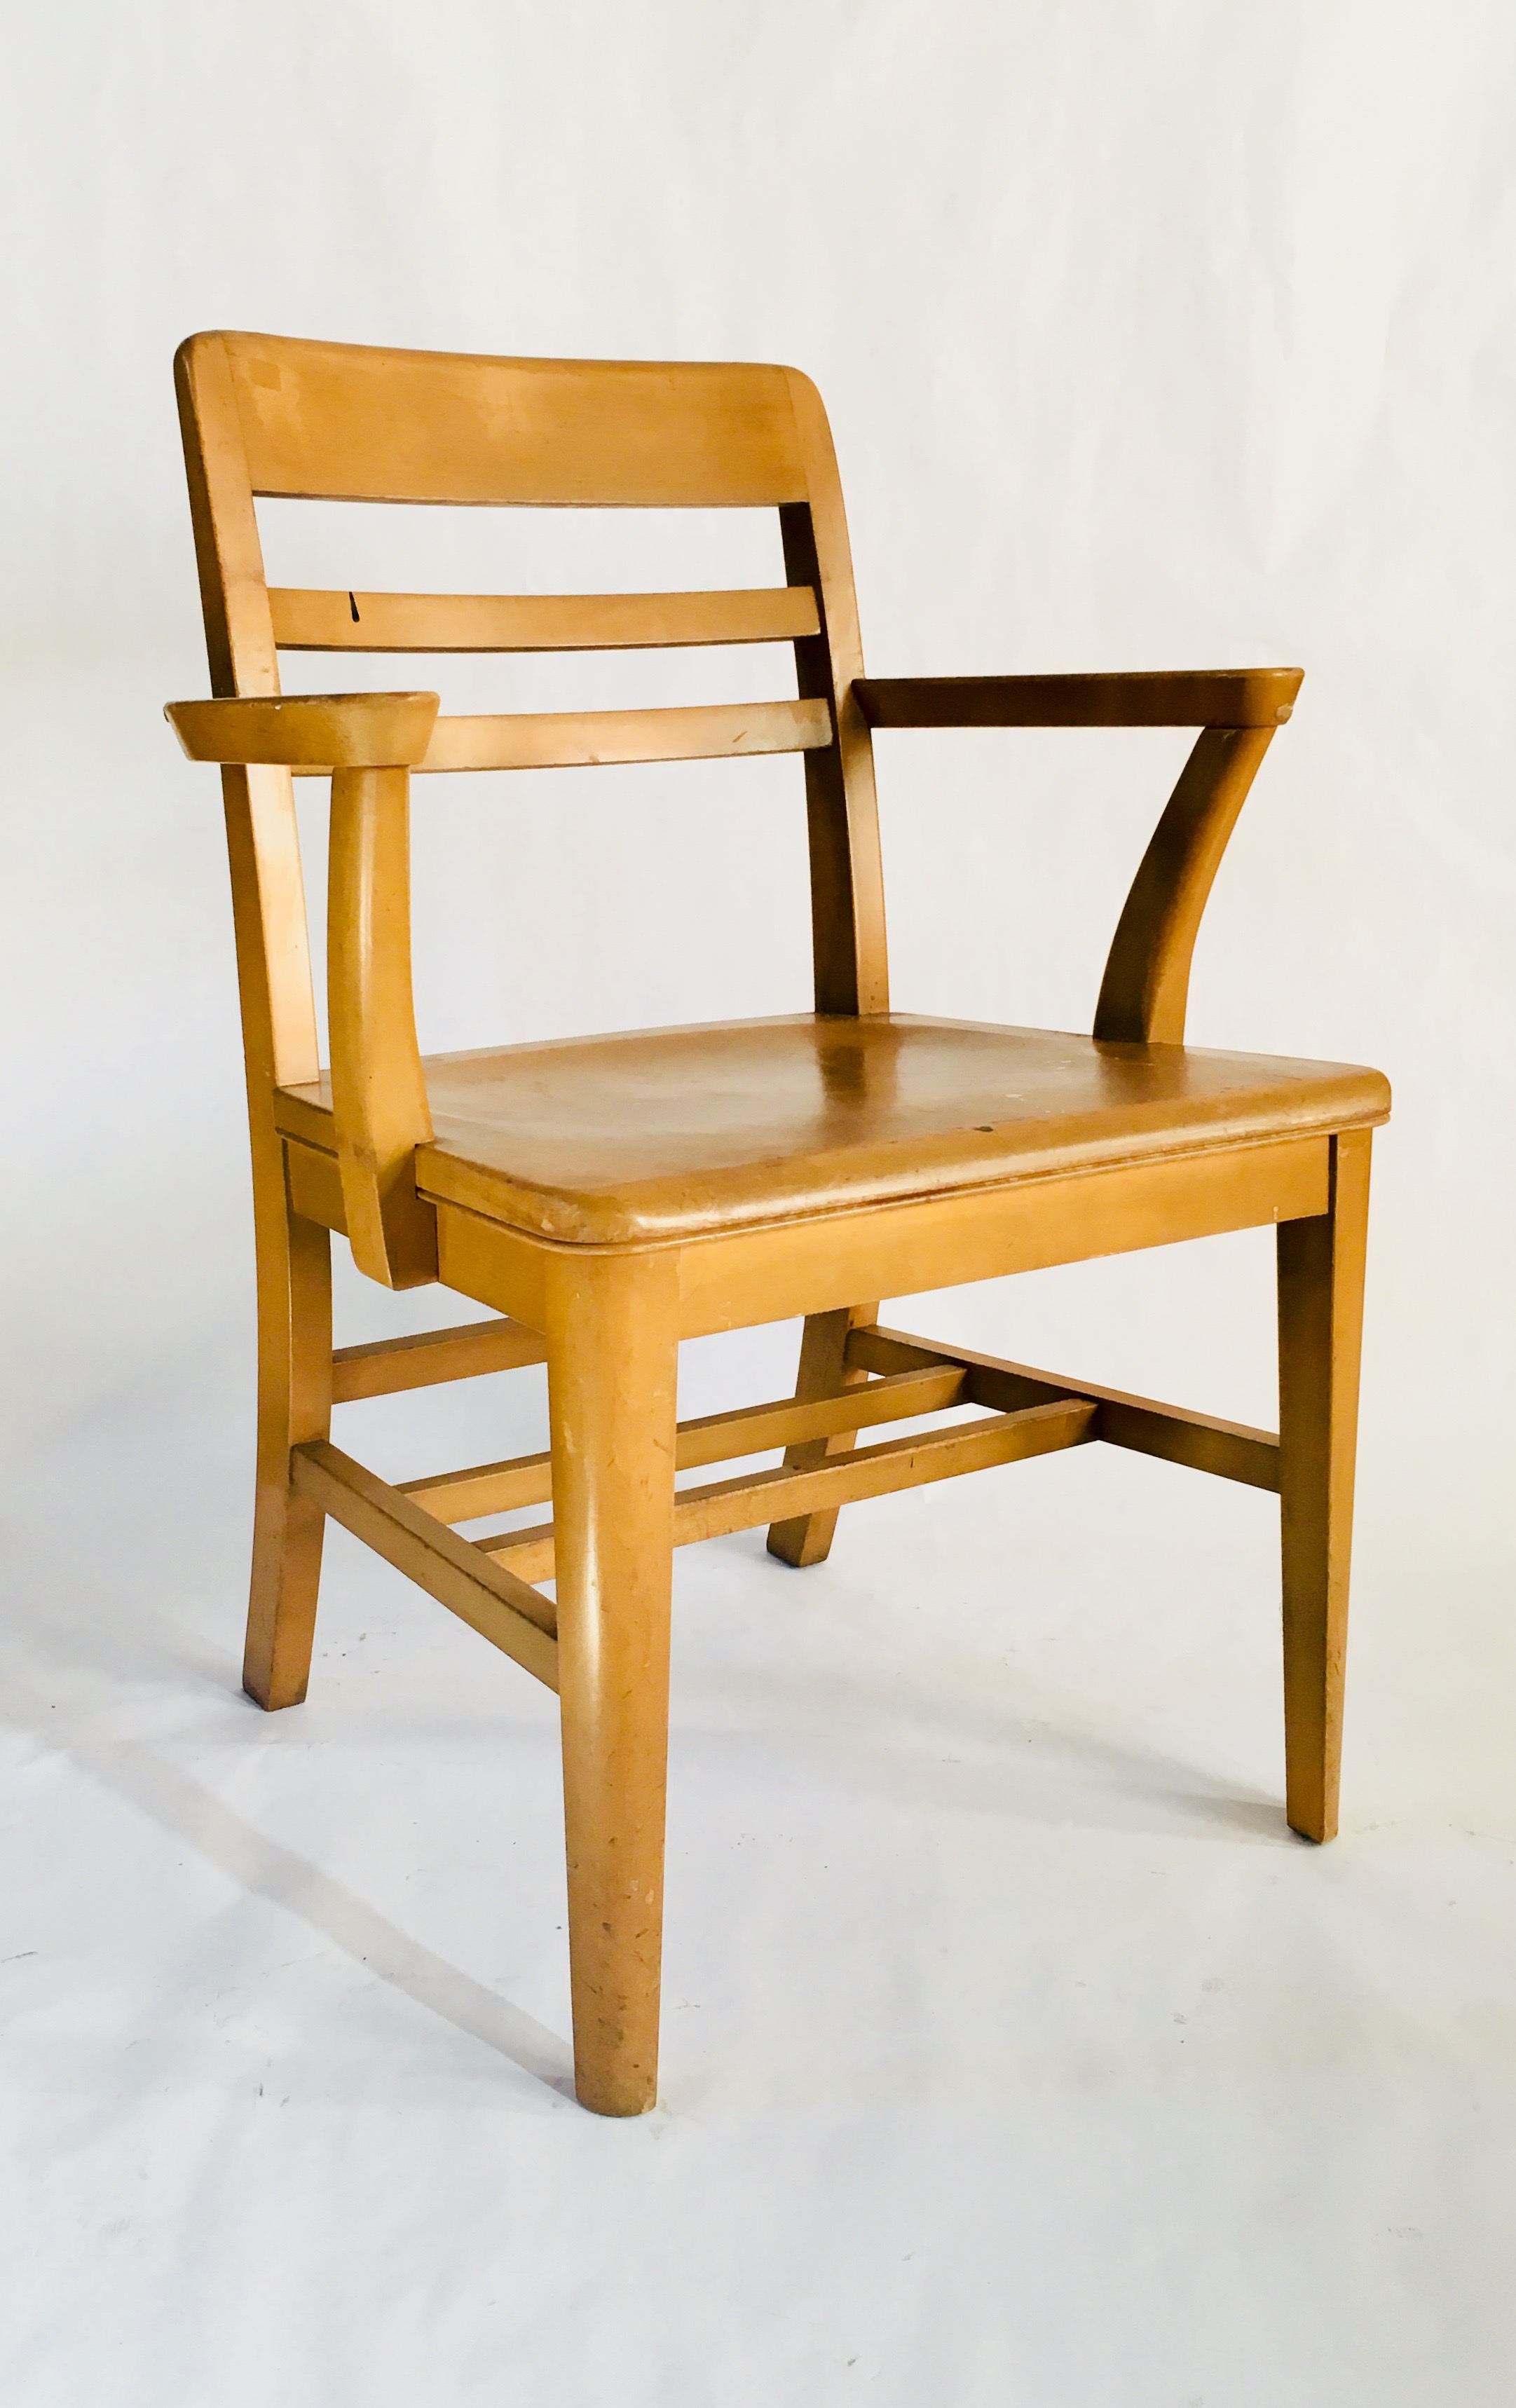 Delicieux Vintage Wooden Library Chair By Gunlocke Chair Co.